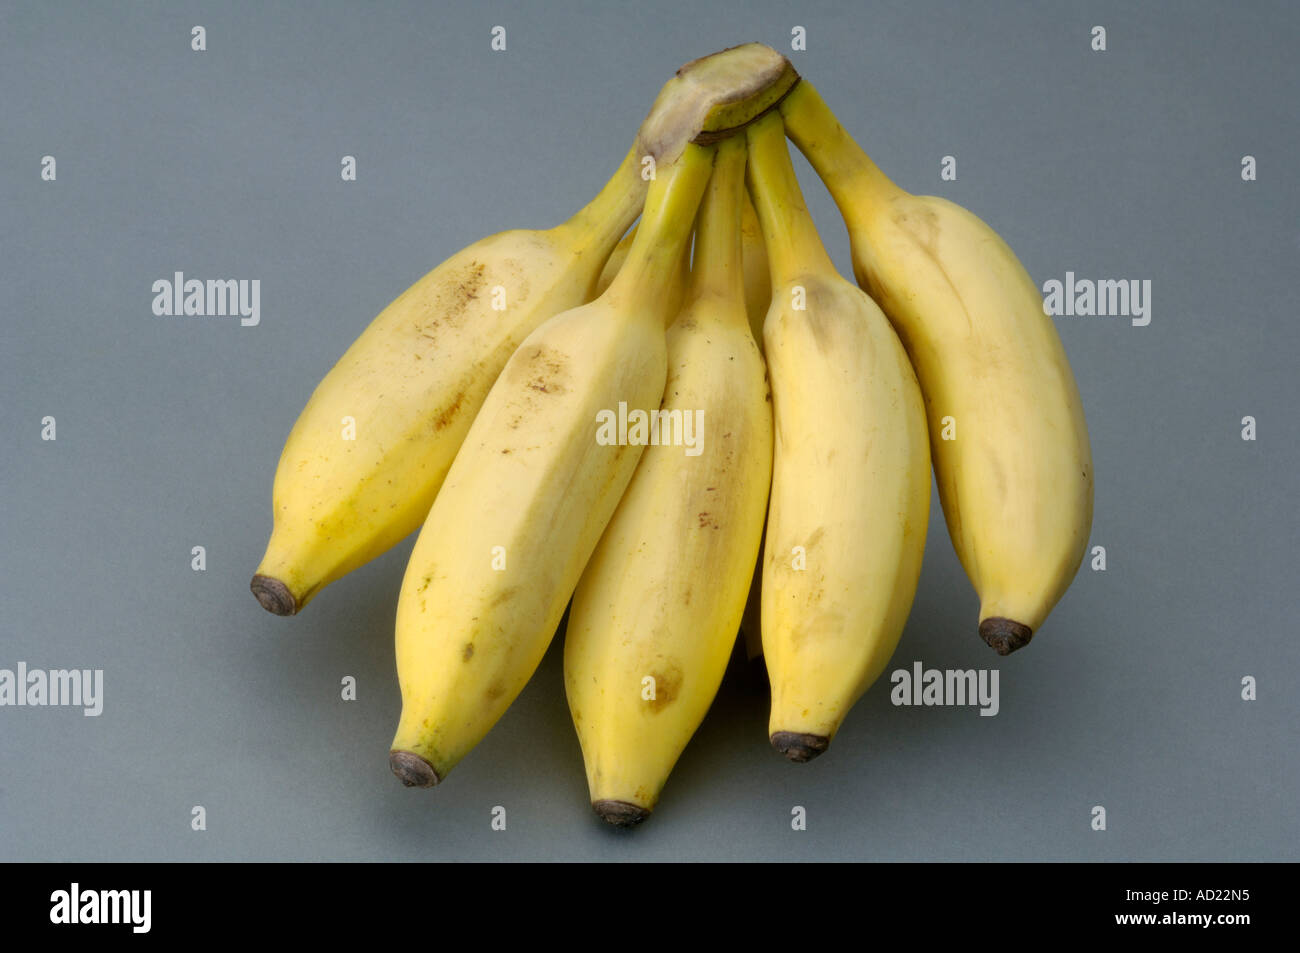 Five Photographs Of Banana In Seach Of >> Hma71717 Five Pieces Yellow Color Banana With Gray Background Stock